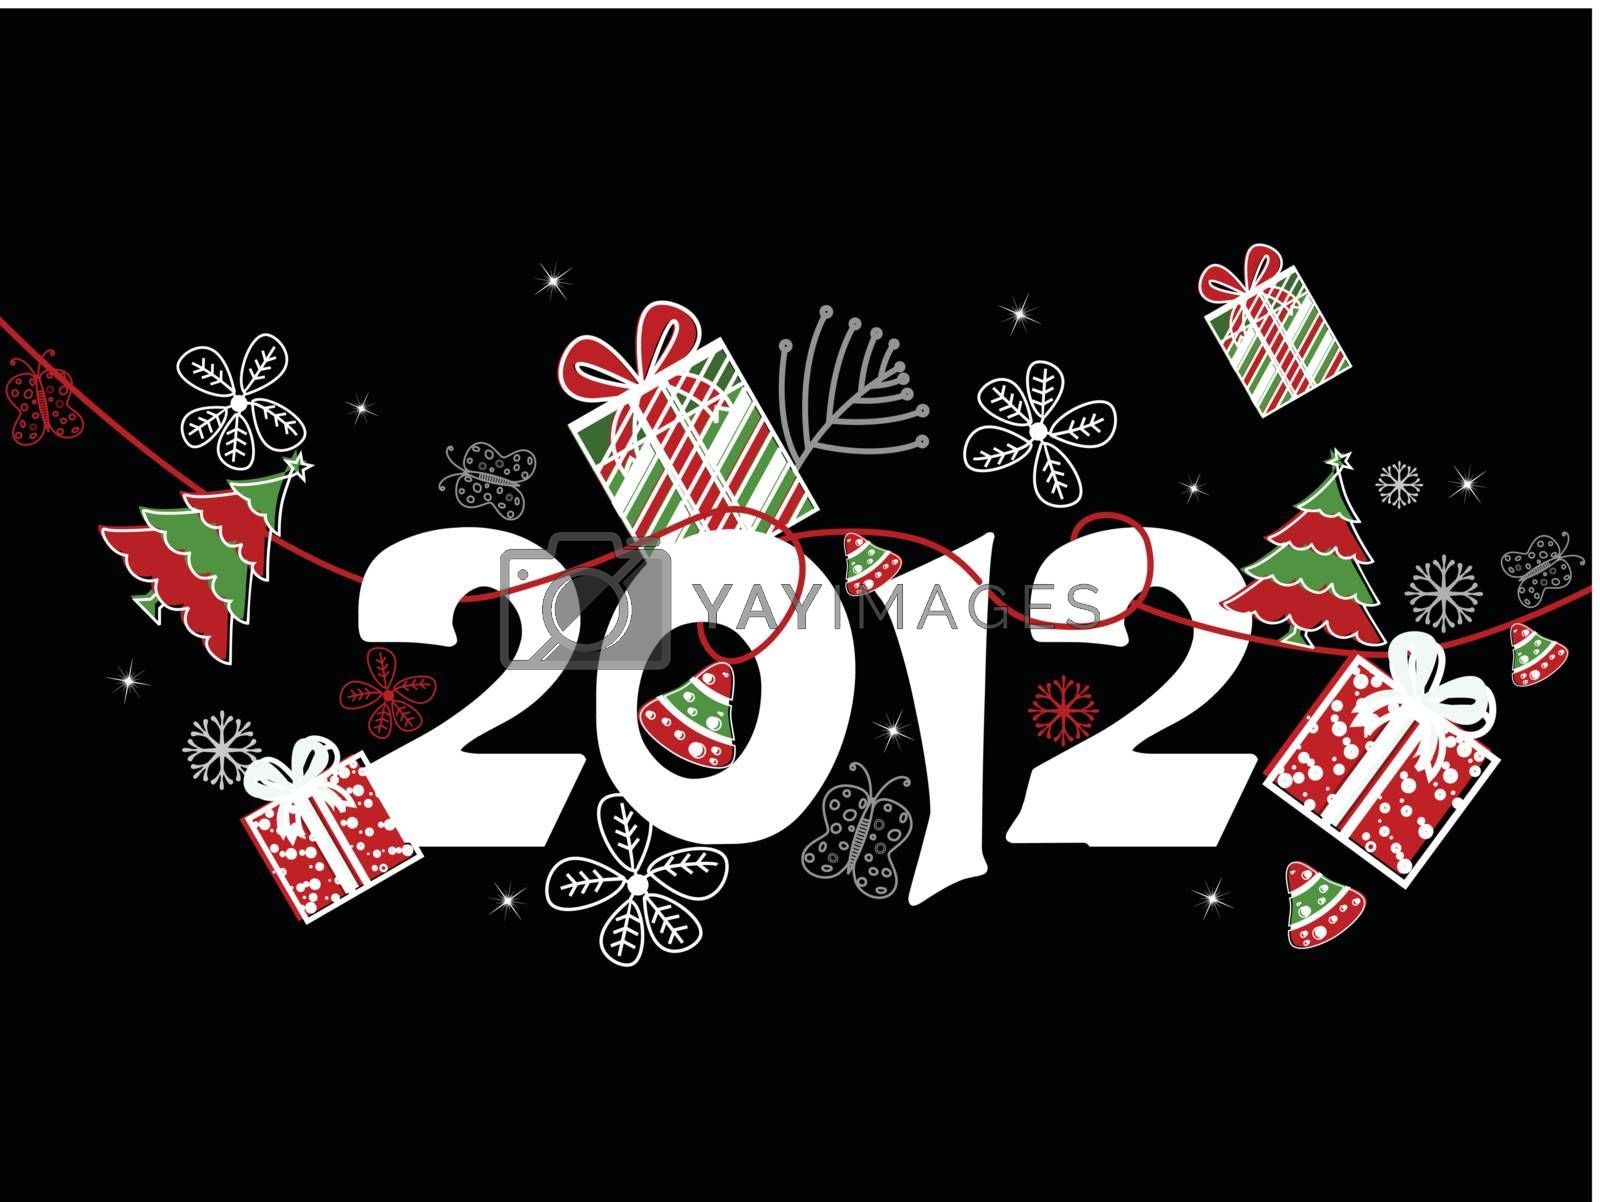 creative artwork design composition background for happy new year celebration